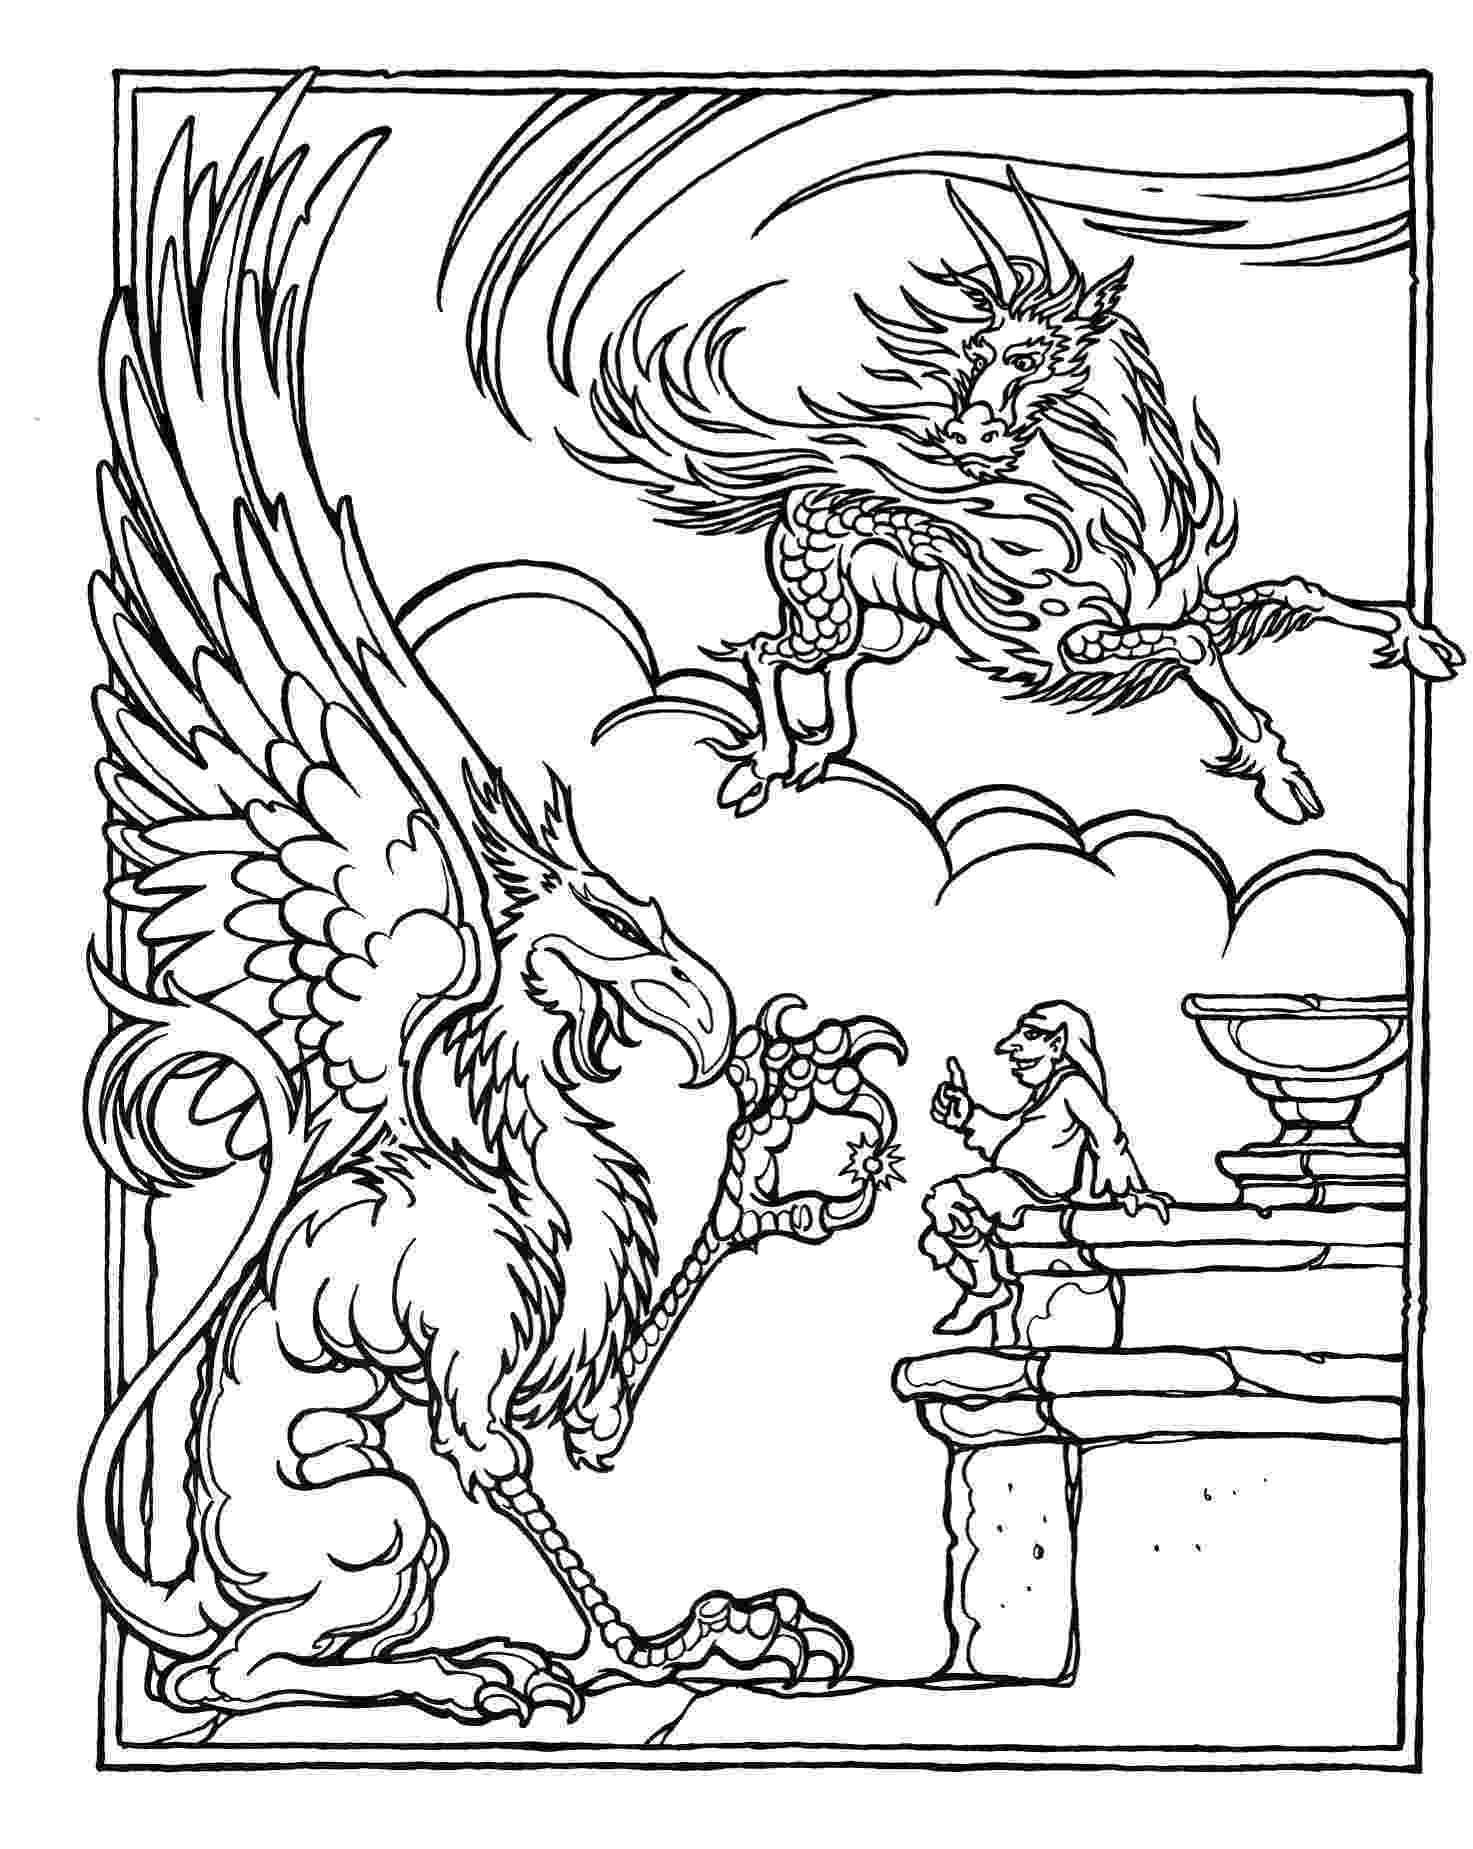 dragons coloring pages monster brains the official advanced dungeons and dragons dragons coloring pages